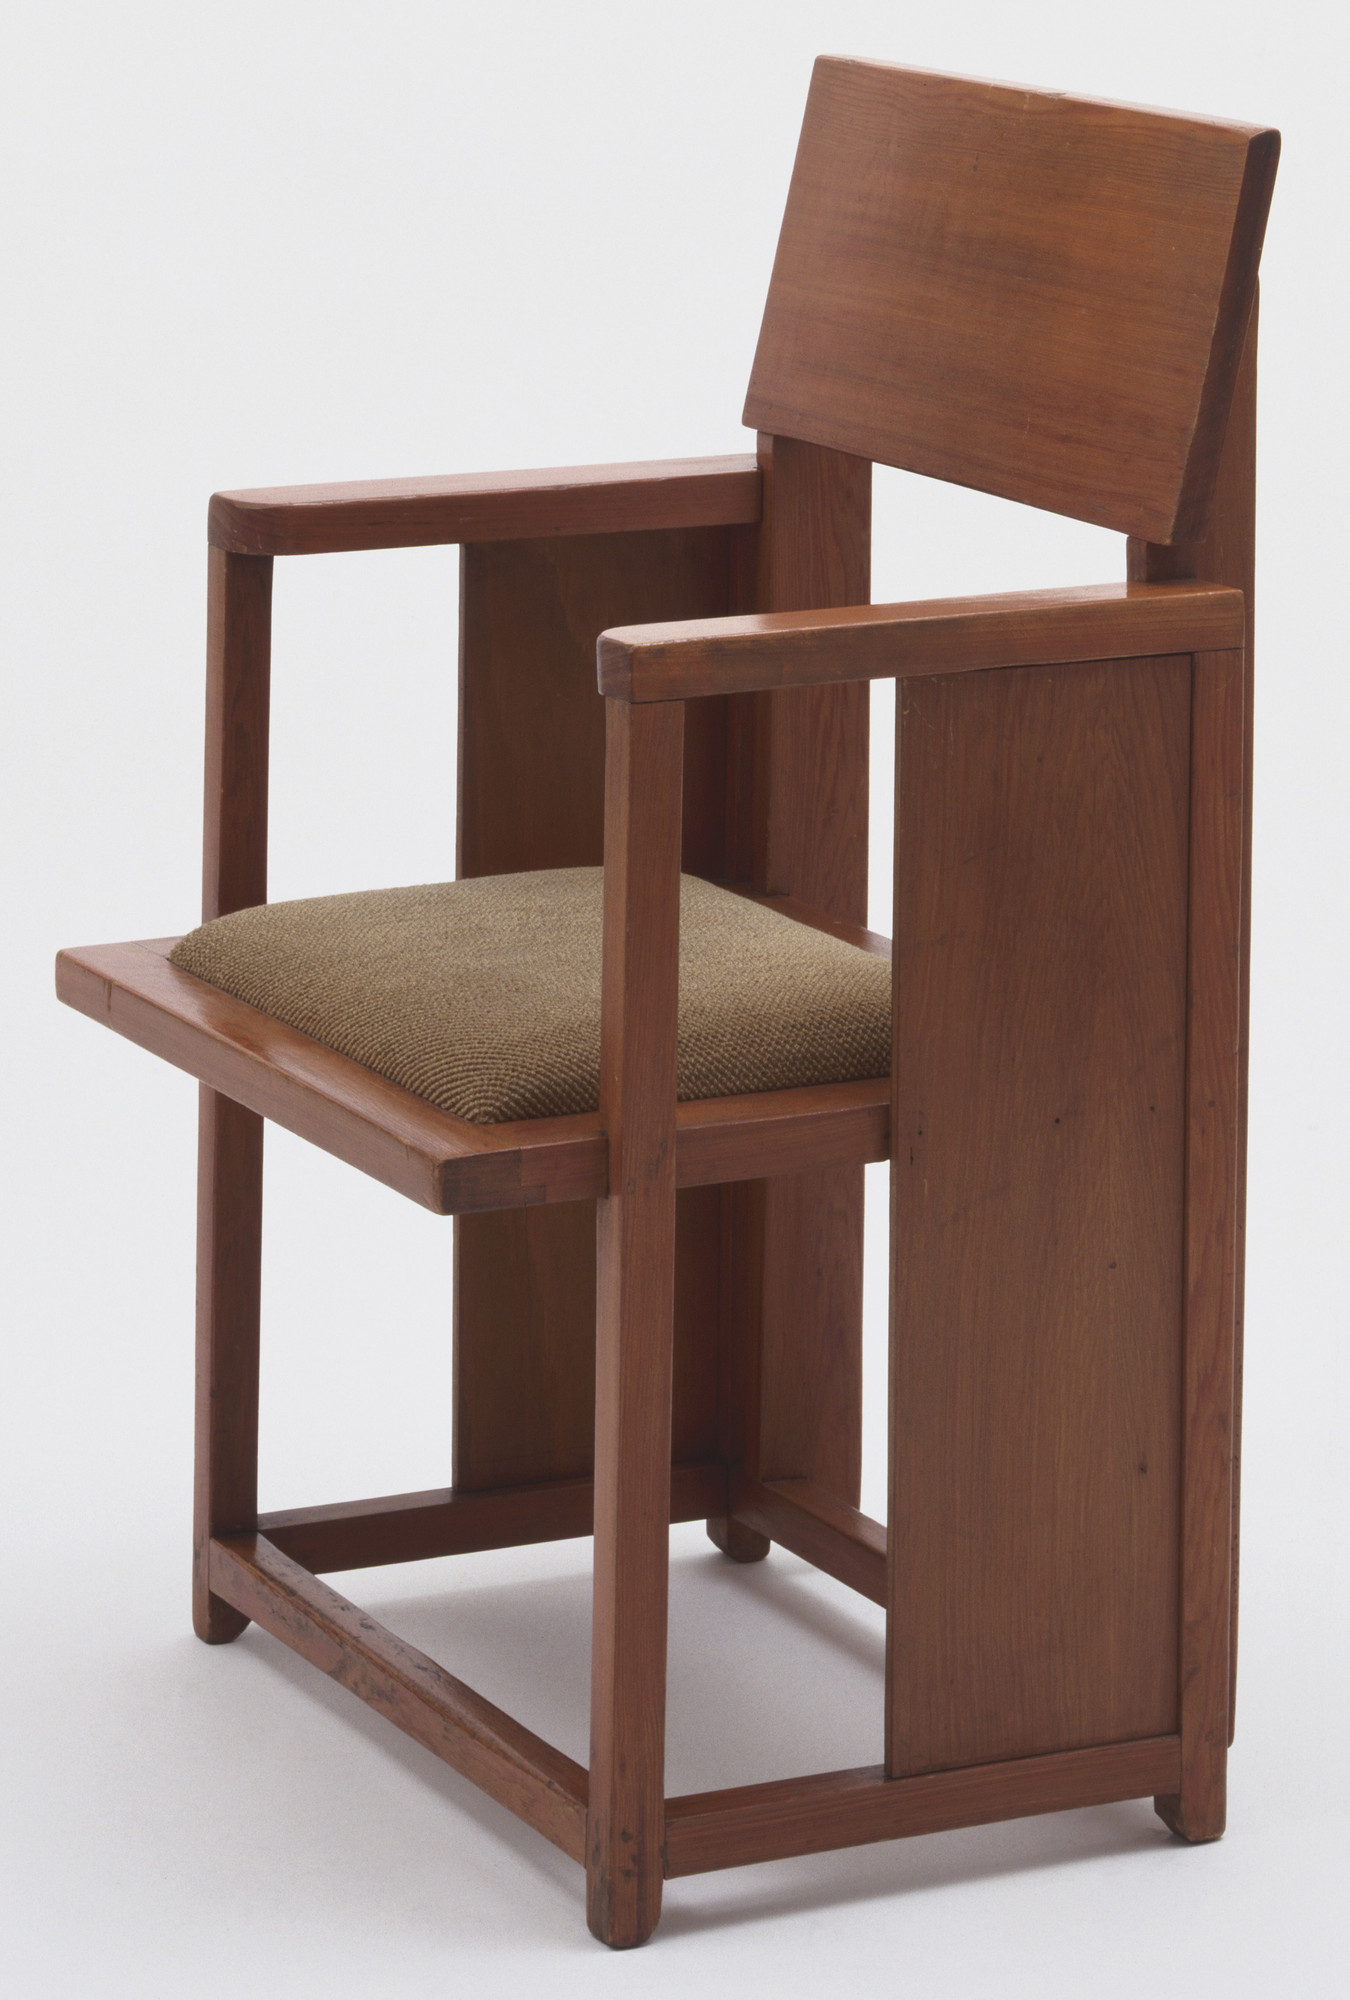 Frank Lloyd Wright. Armchair. c. 1925